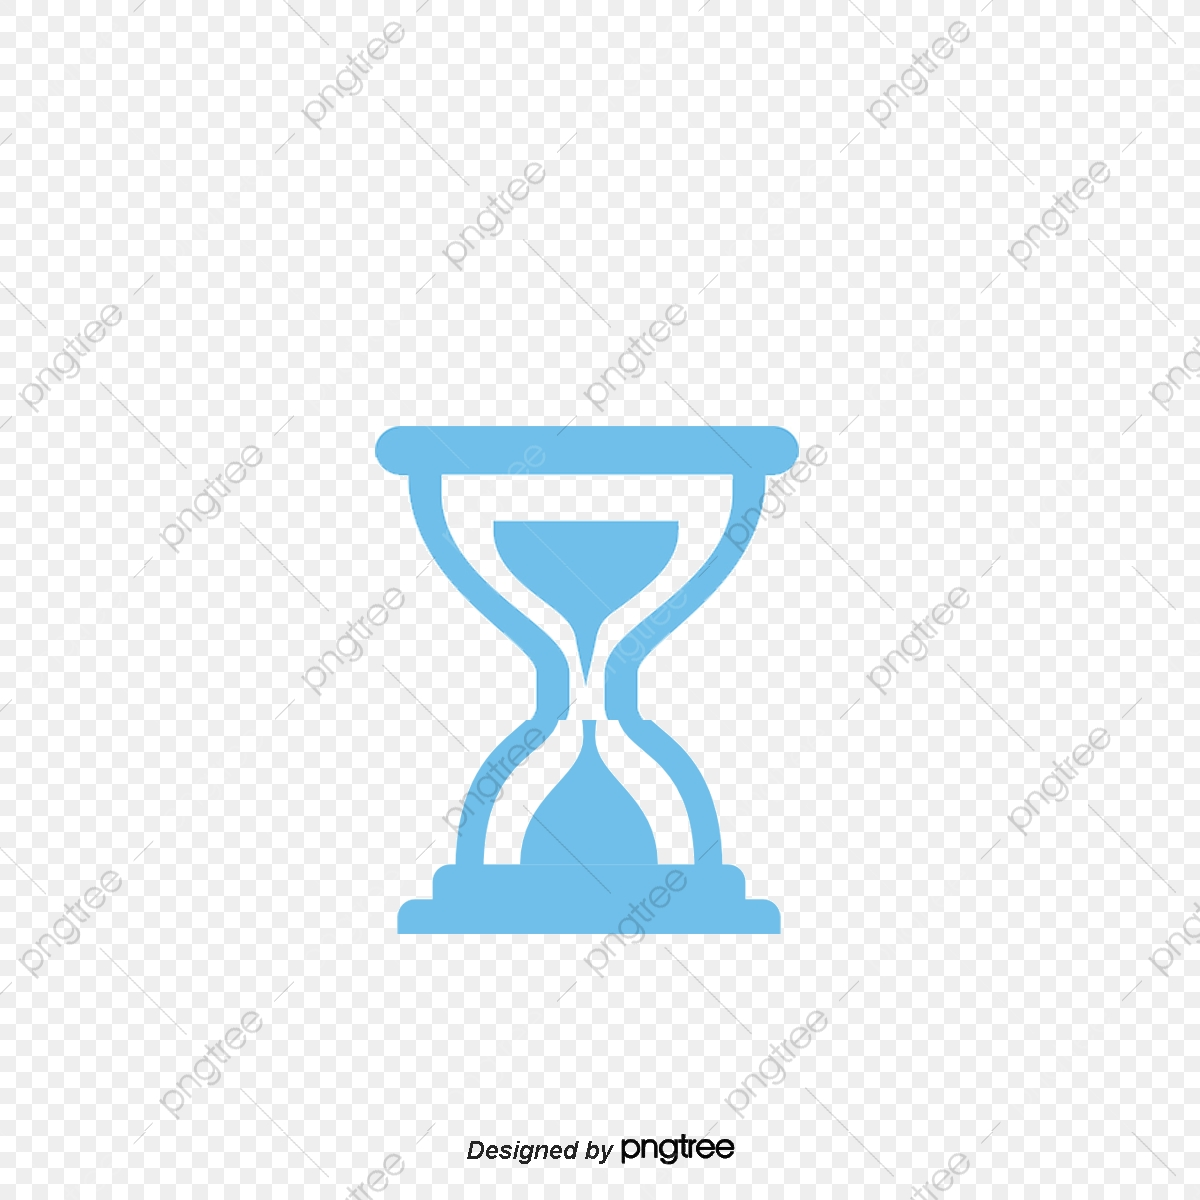 Loading Icon, Loading, Hourglass, Countdown PNG Transparent Clipart.